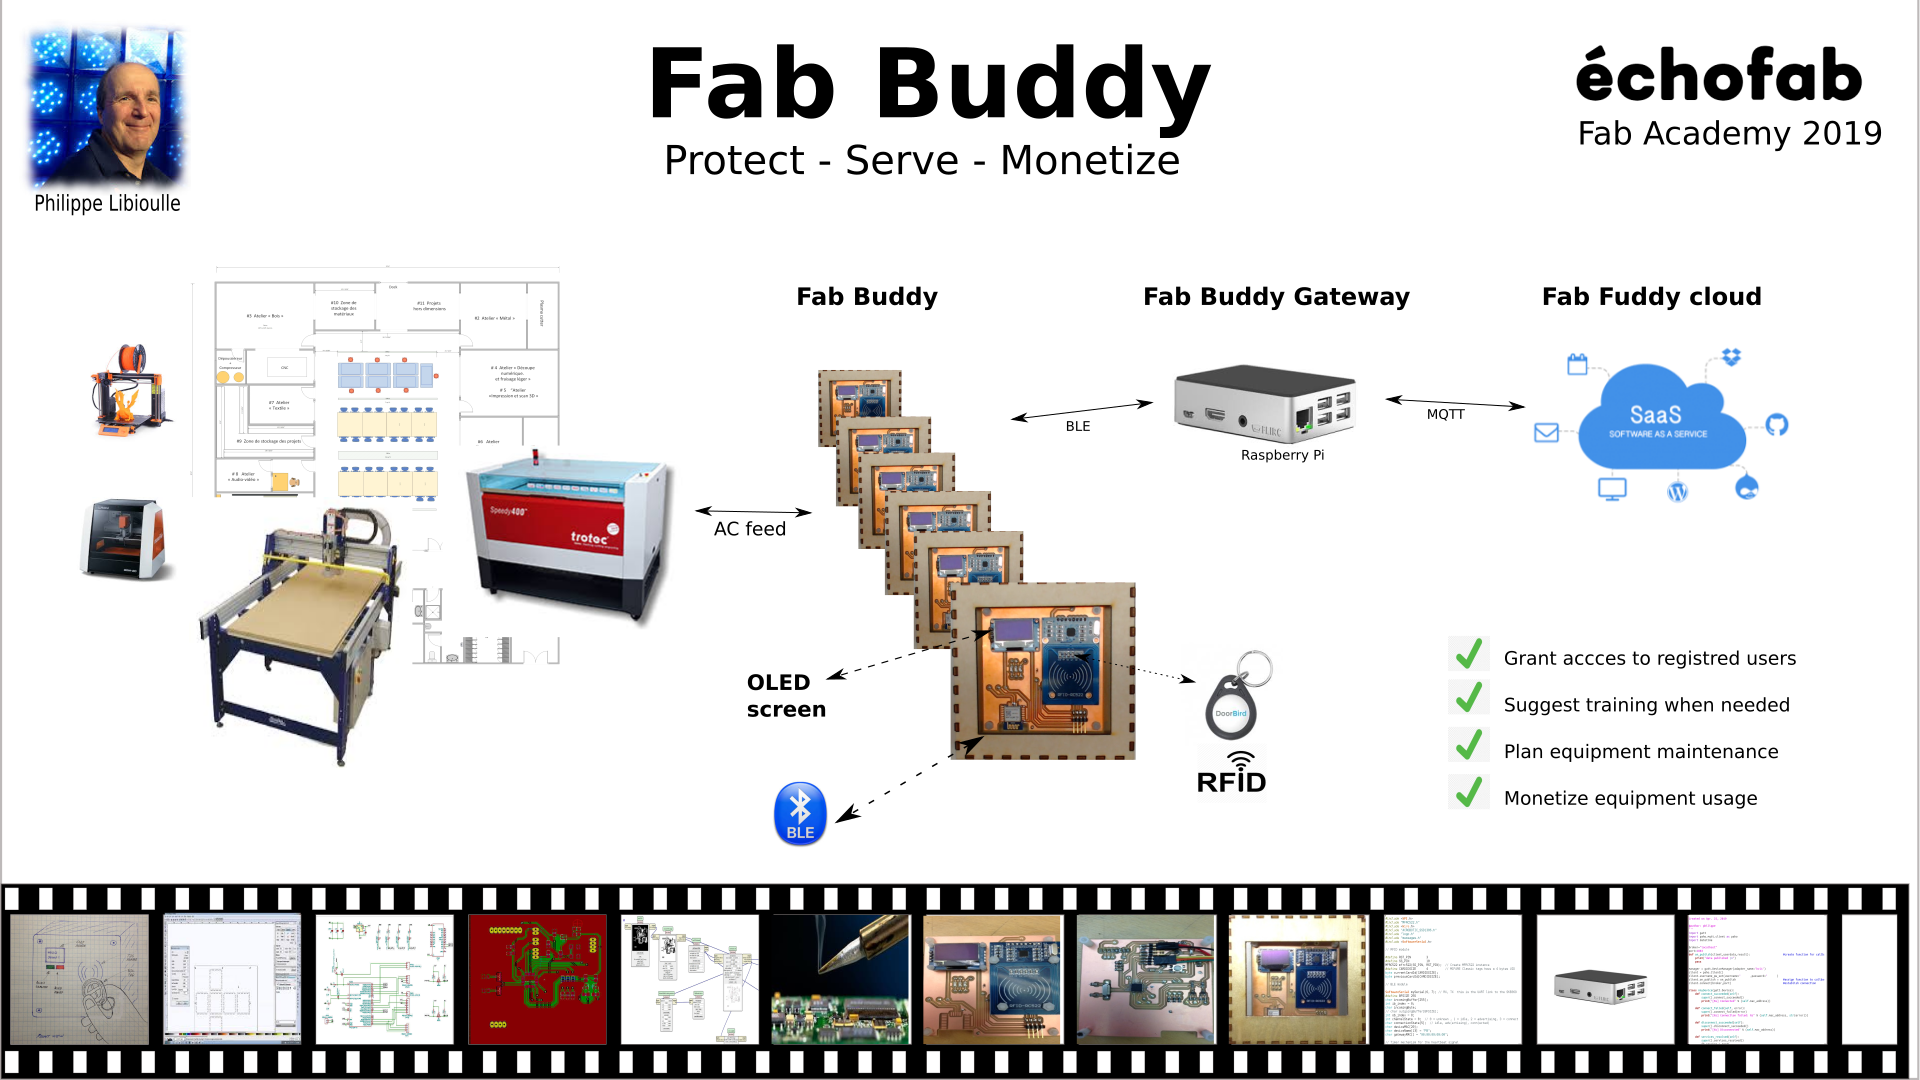 Fab Buddy, by Philippe Libioulle